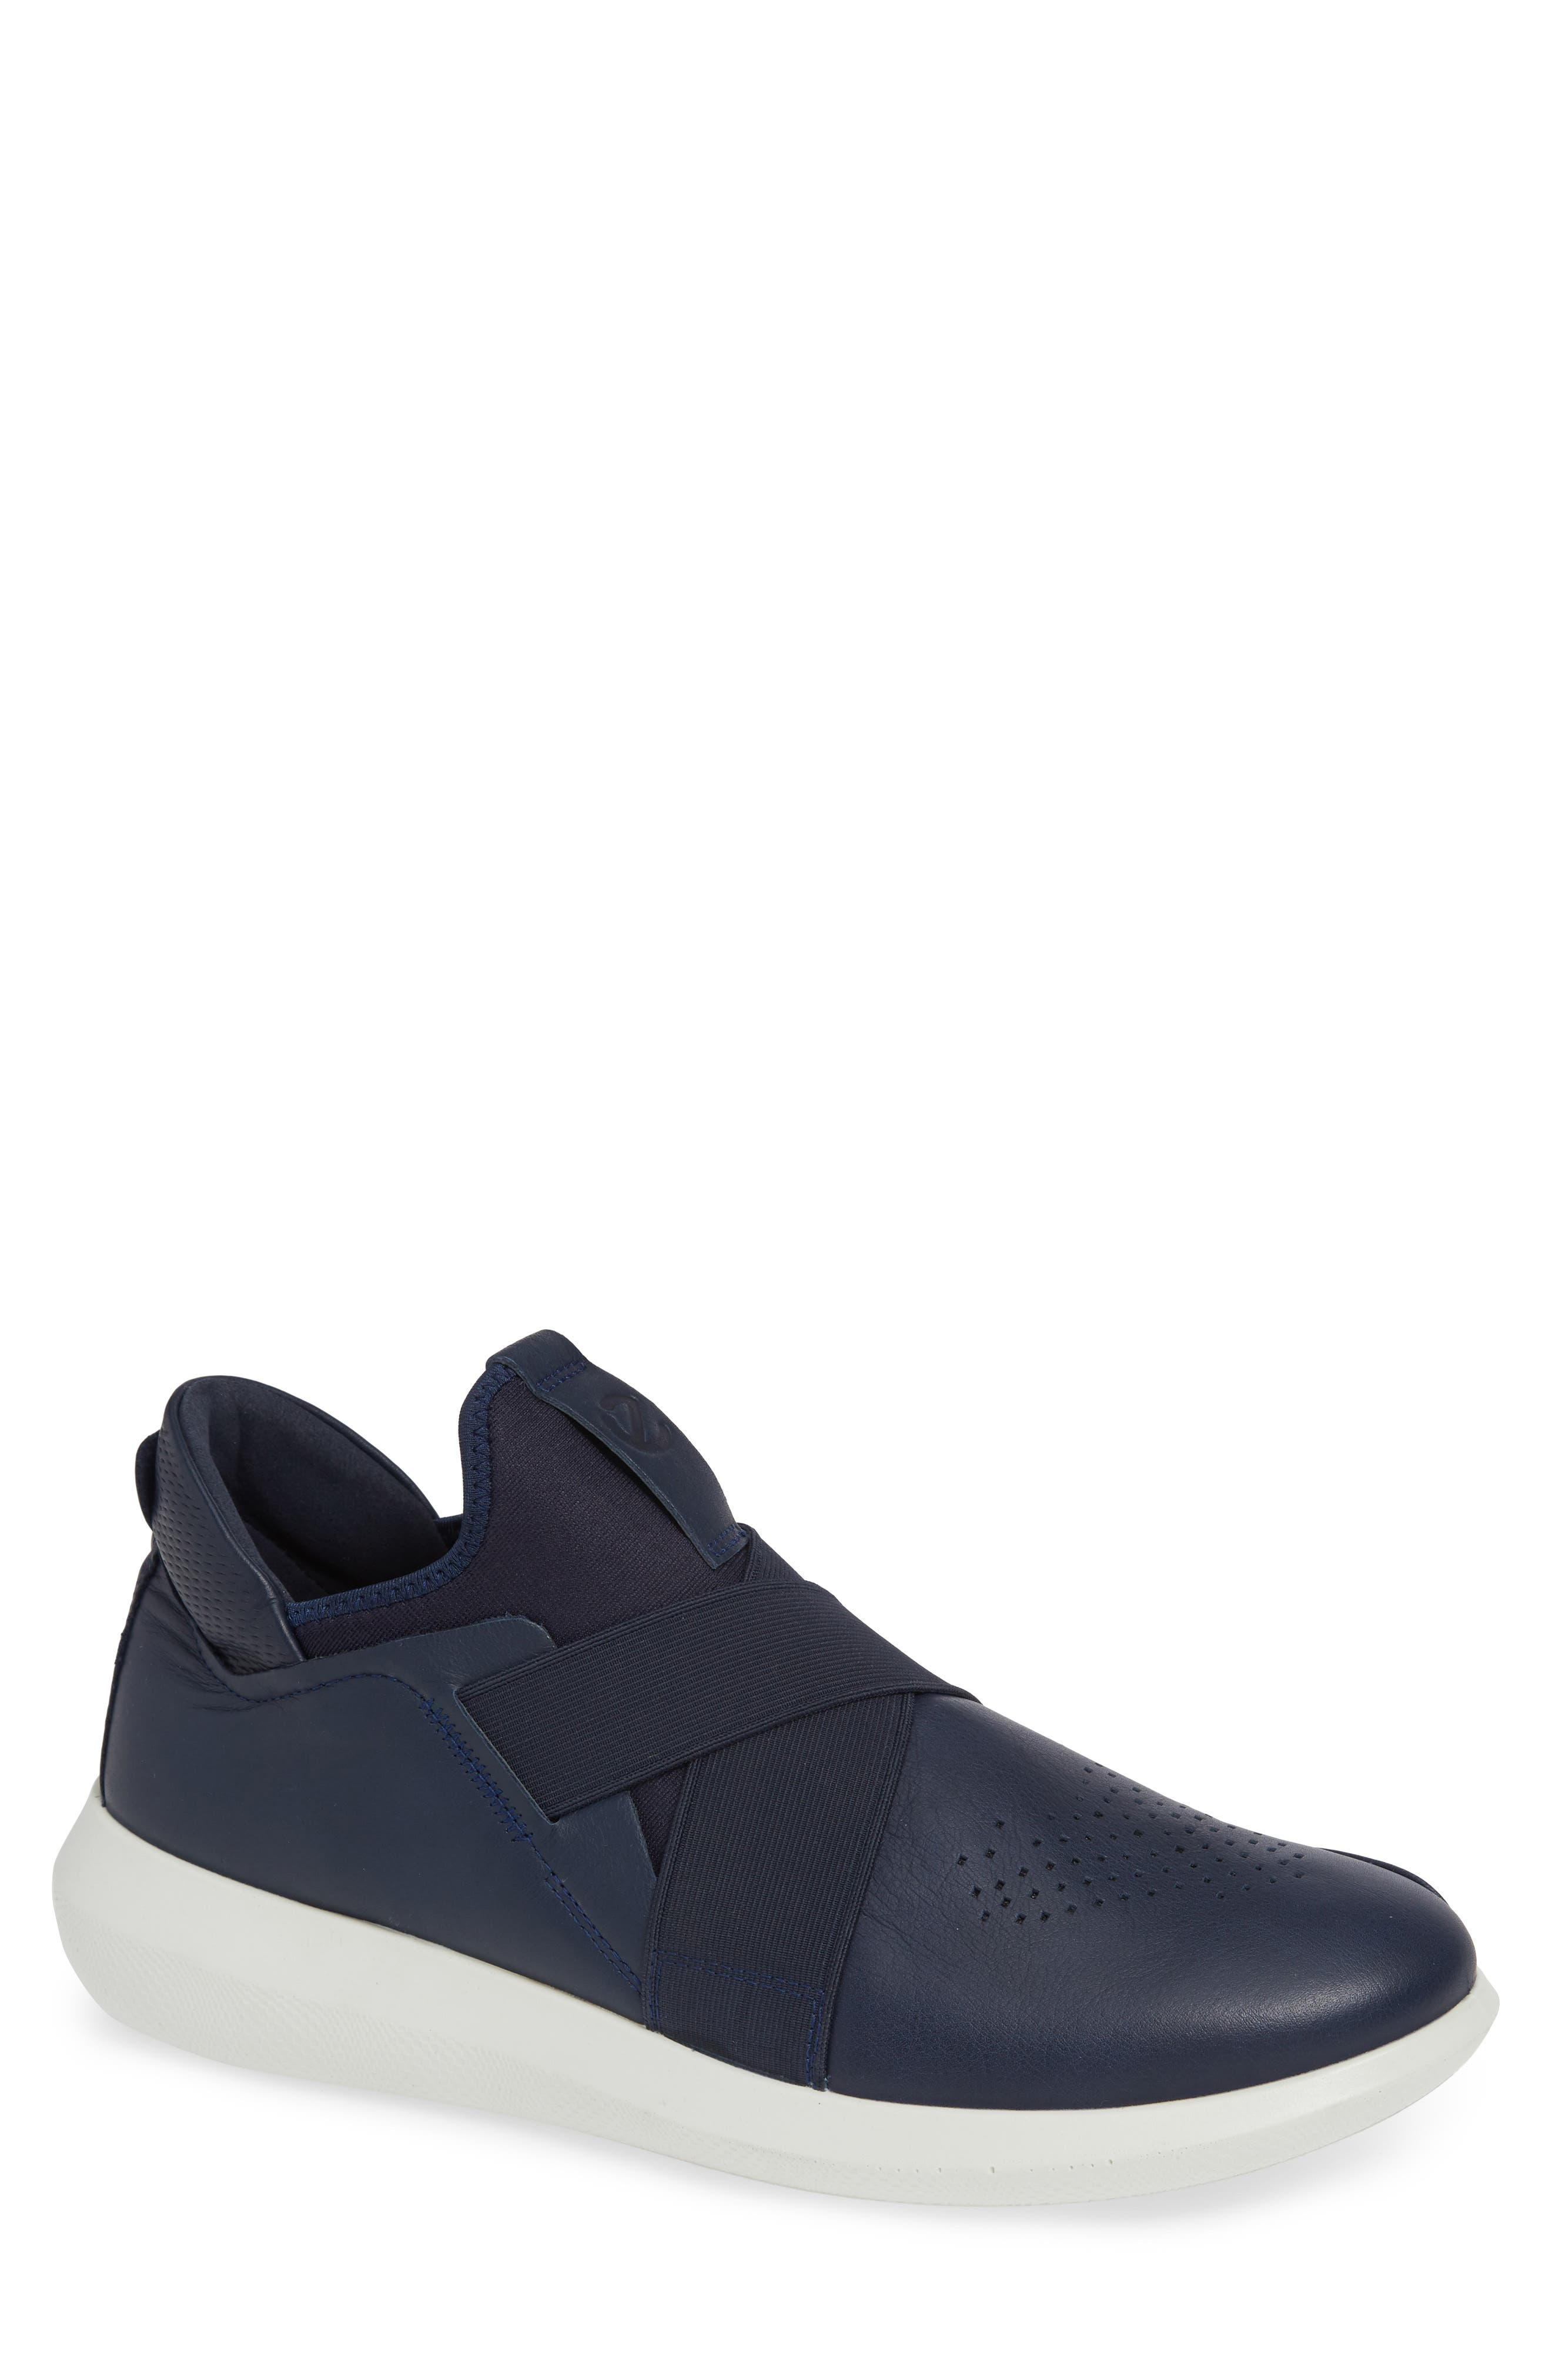 Scinapse Band Slip-On,                             Main thumbnail 1, color,                             TRUE NAVY LEATHER